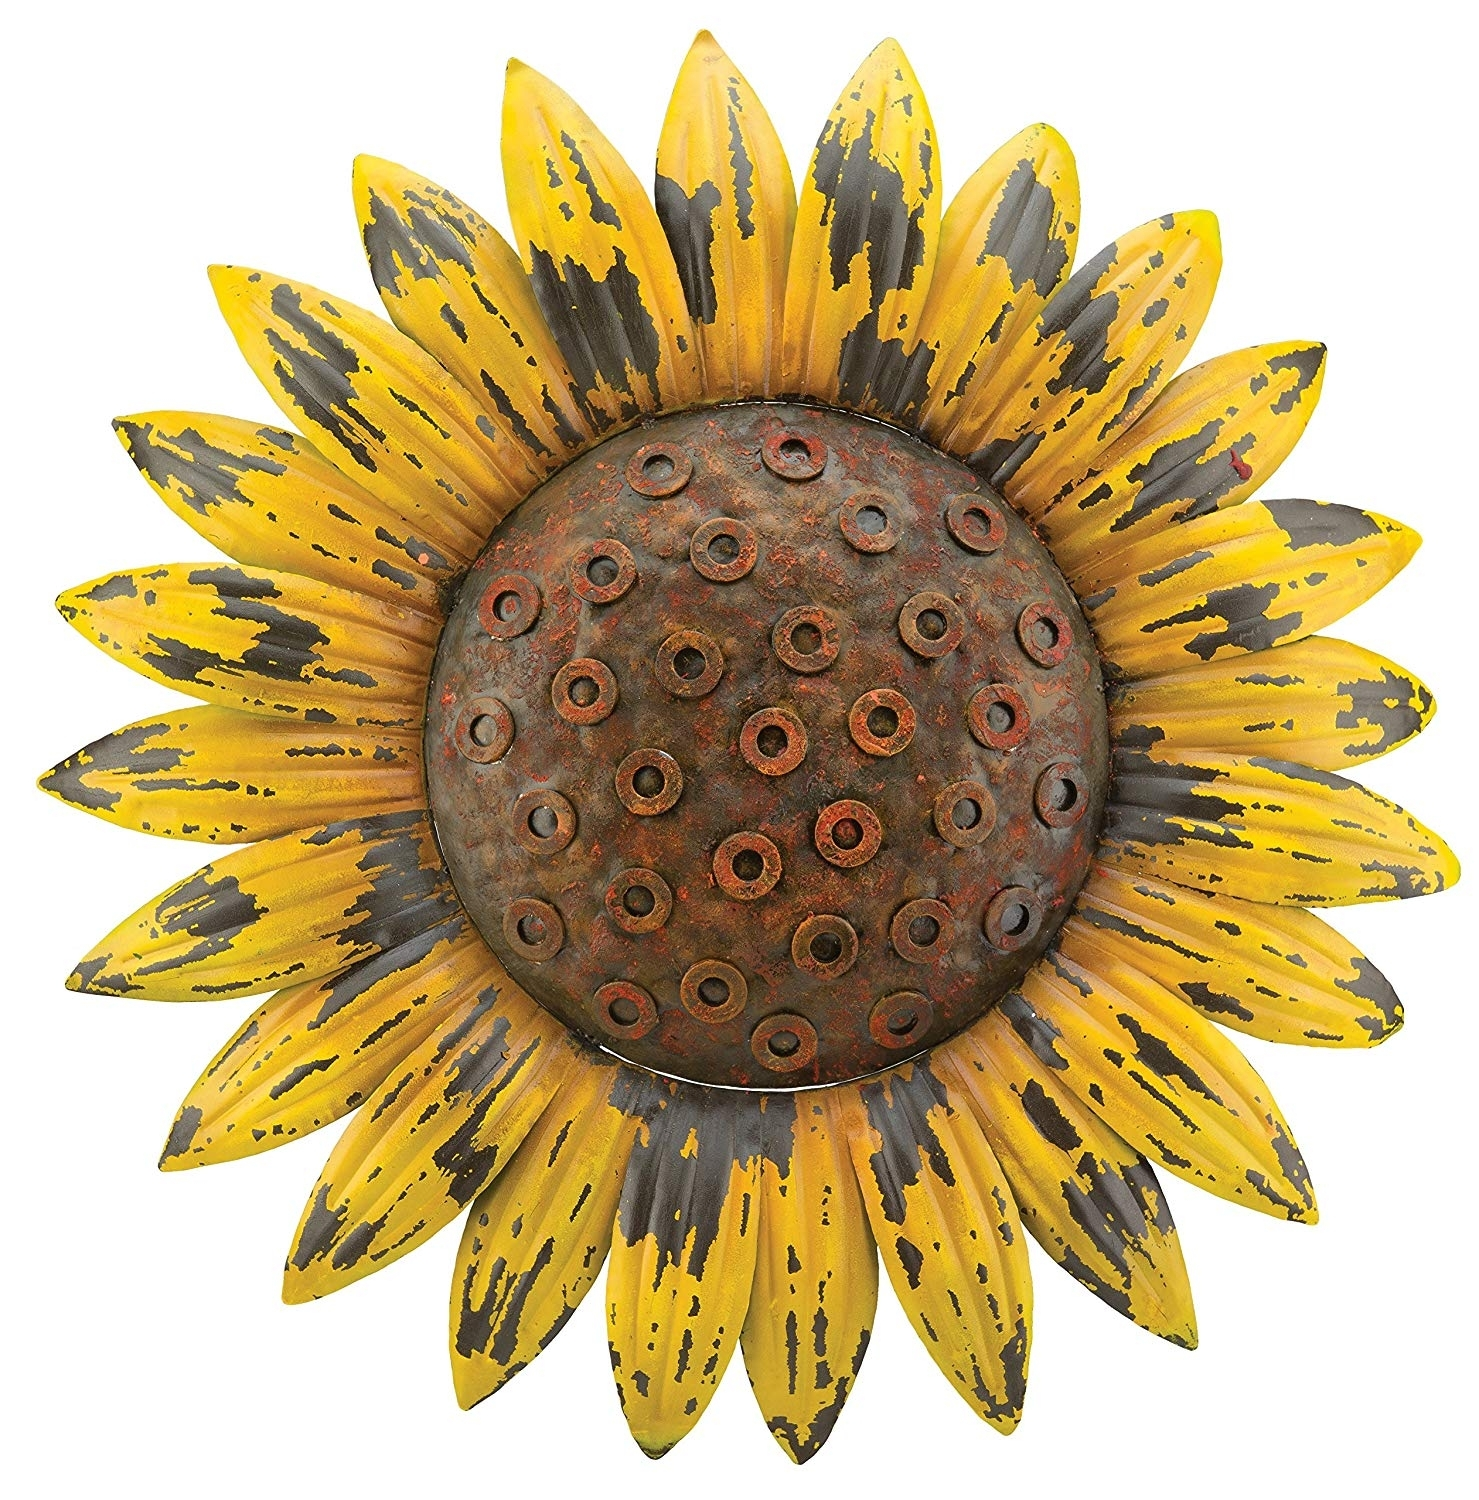 Amazon: Regal Art & Gift Rustic Flower Wall Decor, Sunflower inside Sunflower Wall Art (Image 2 of 20)